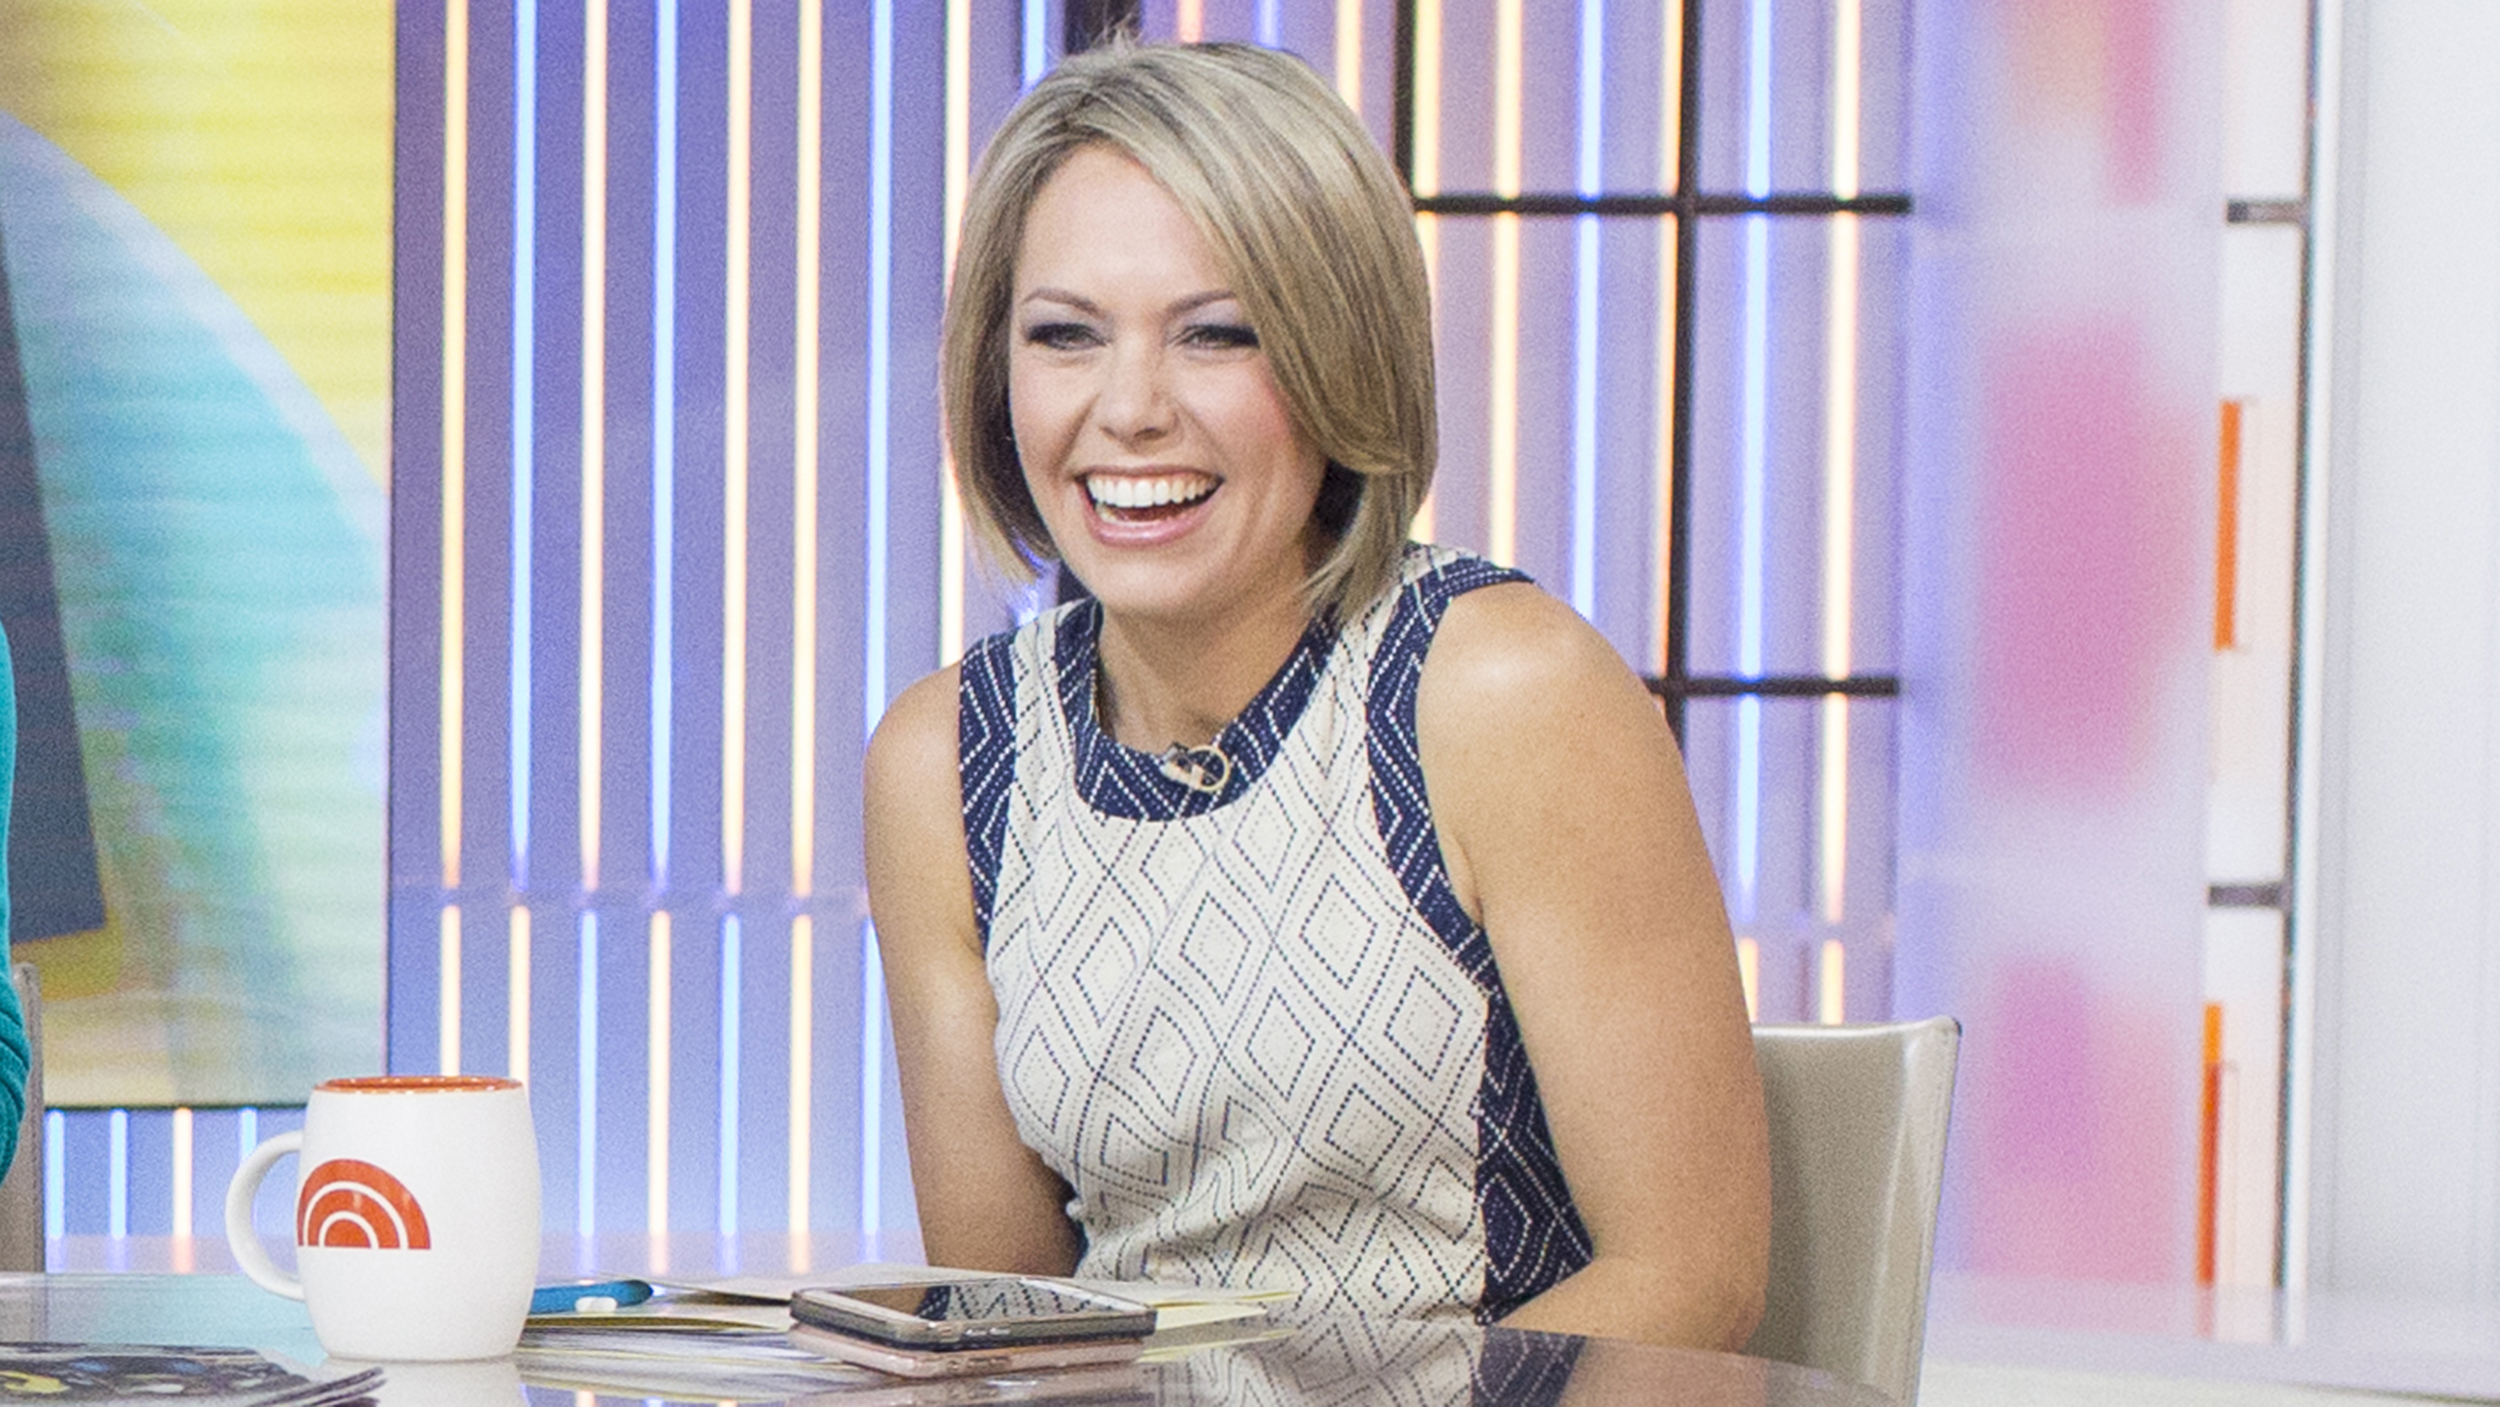 Dylan Dreyer May Have Outdone Herself In Her Latest Throwback Pic